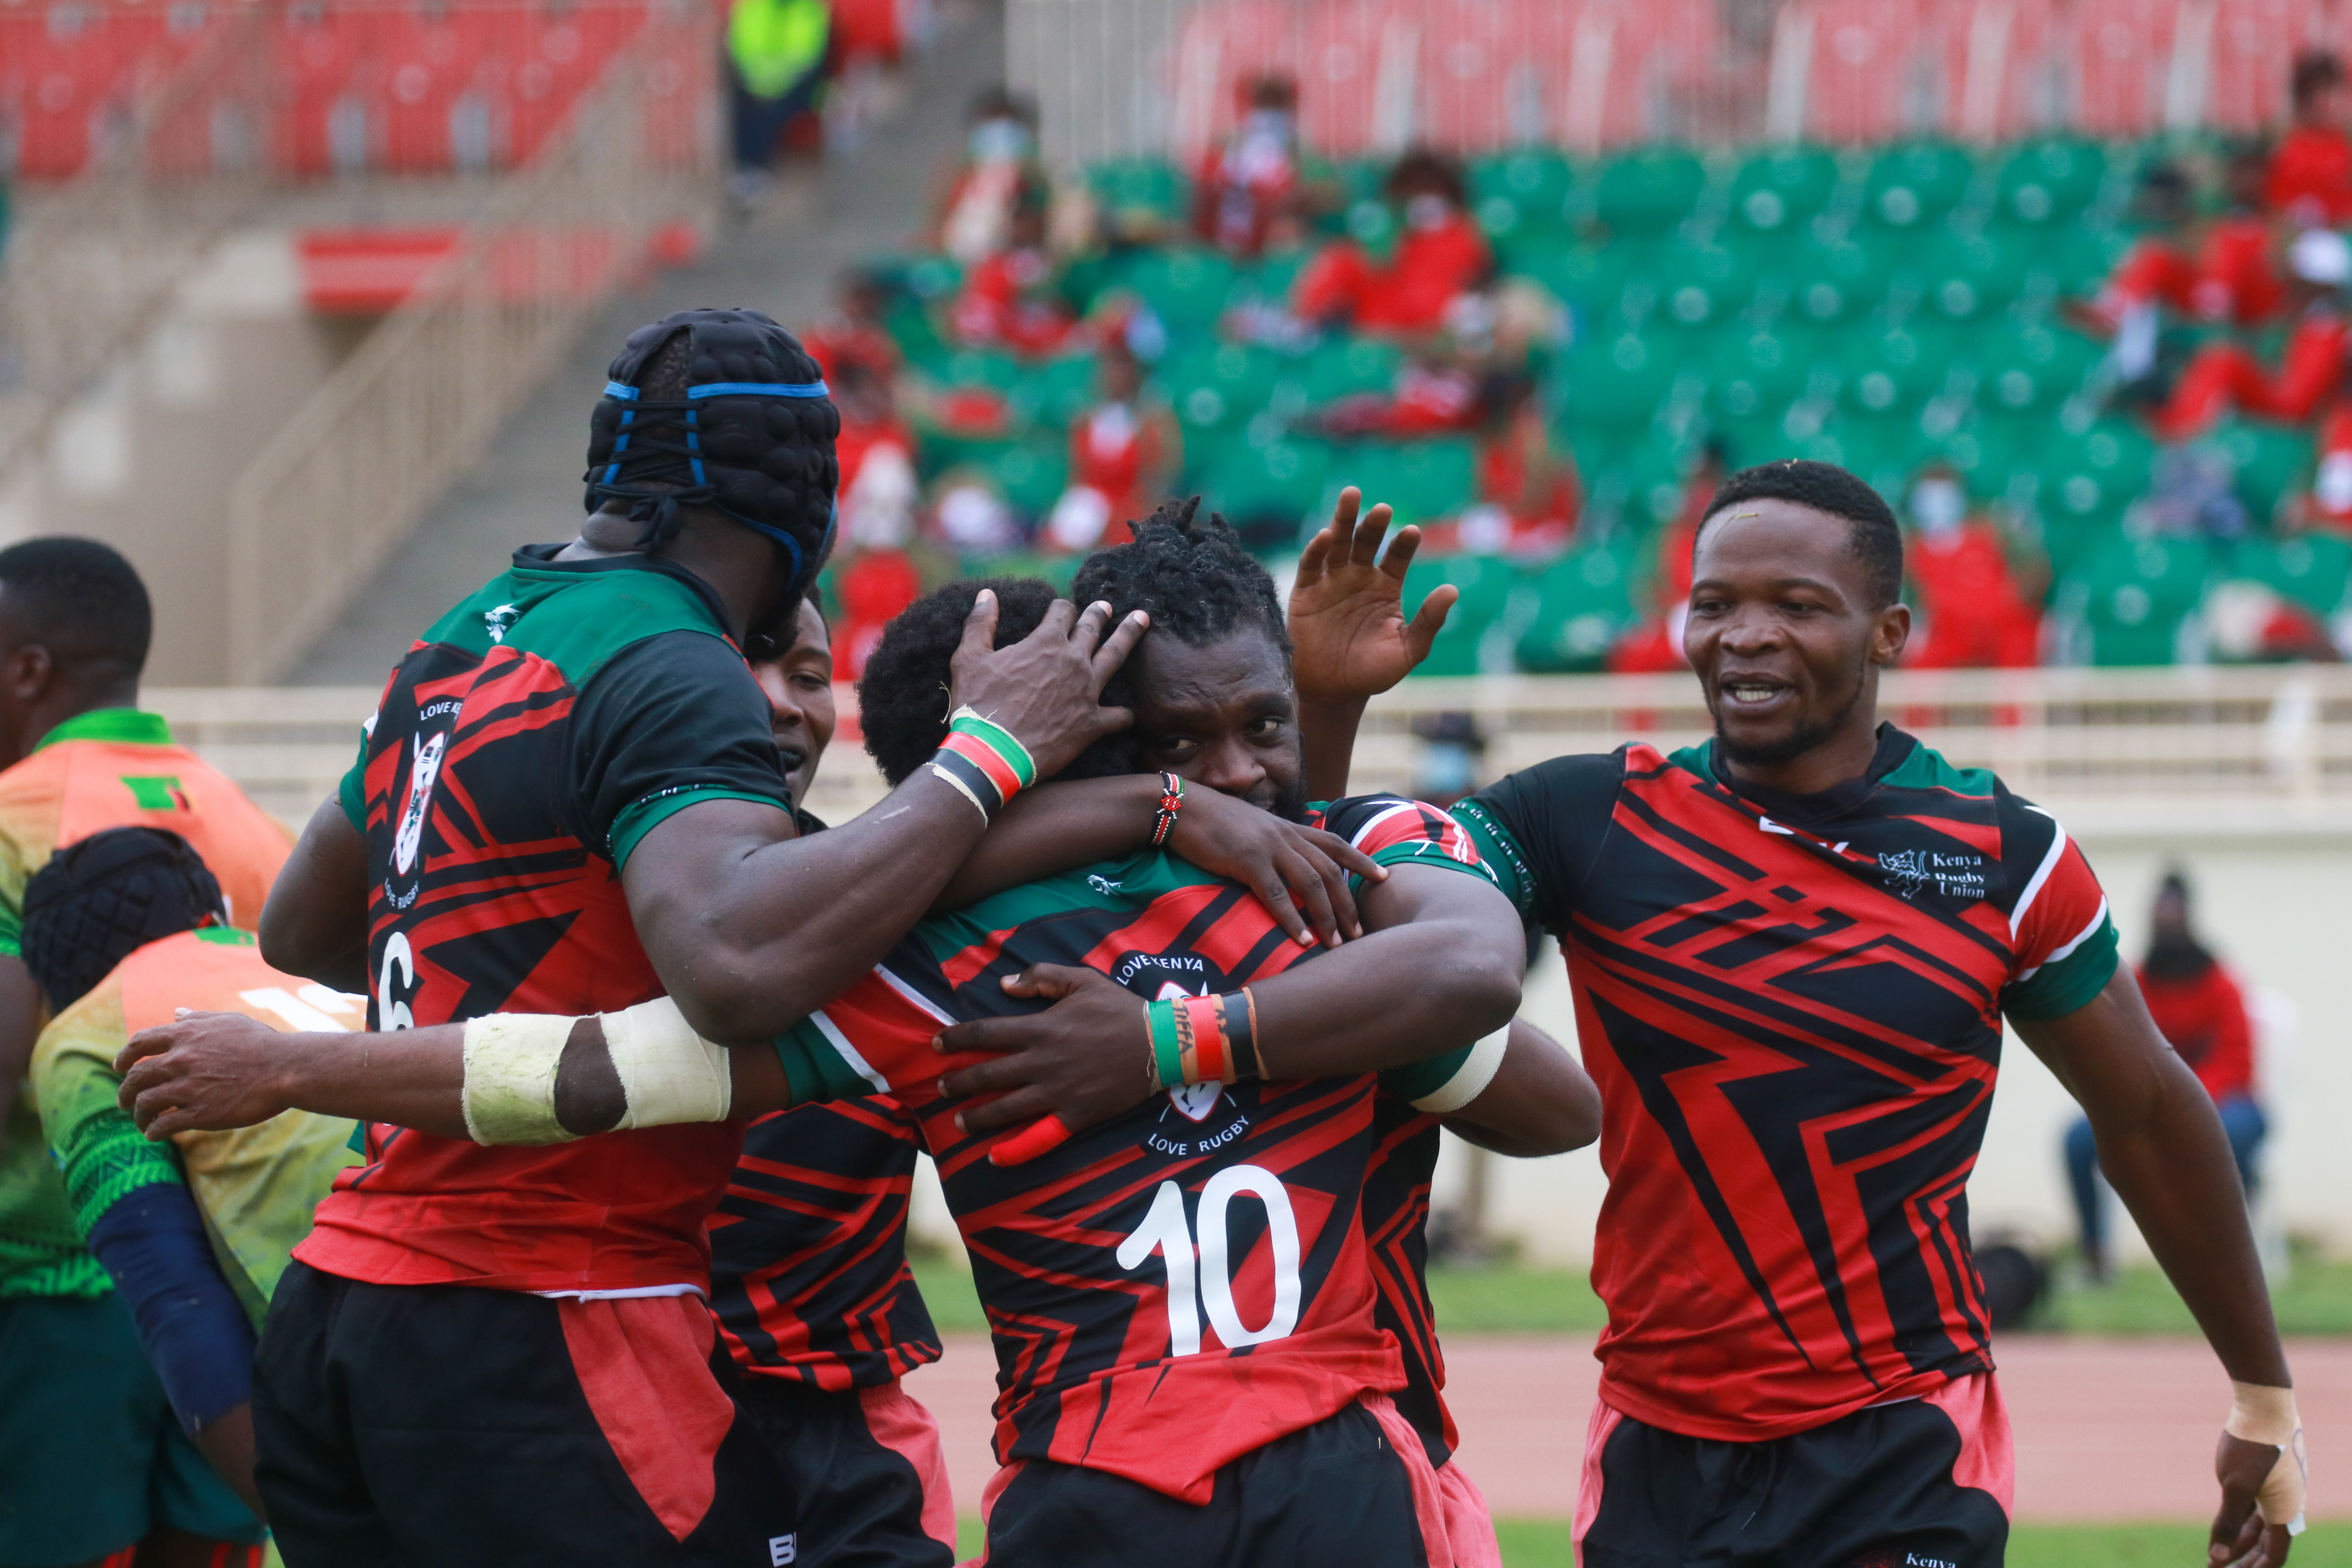 Wrap up of Rugby Africa Cup games/Rugby World Cup 2023 Qualifiers